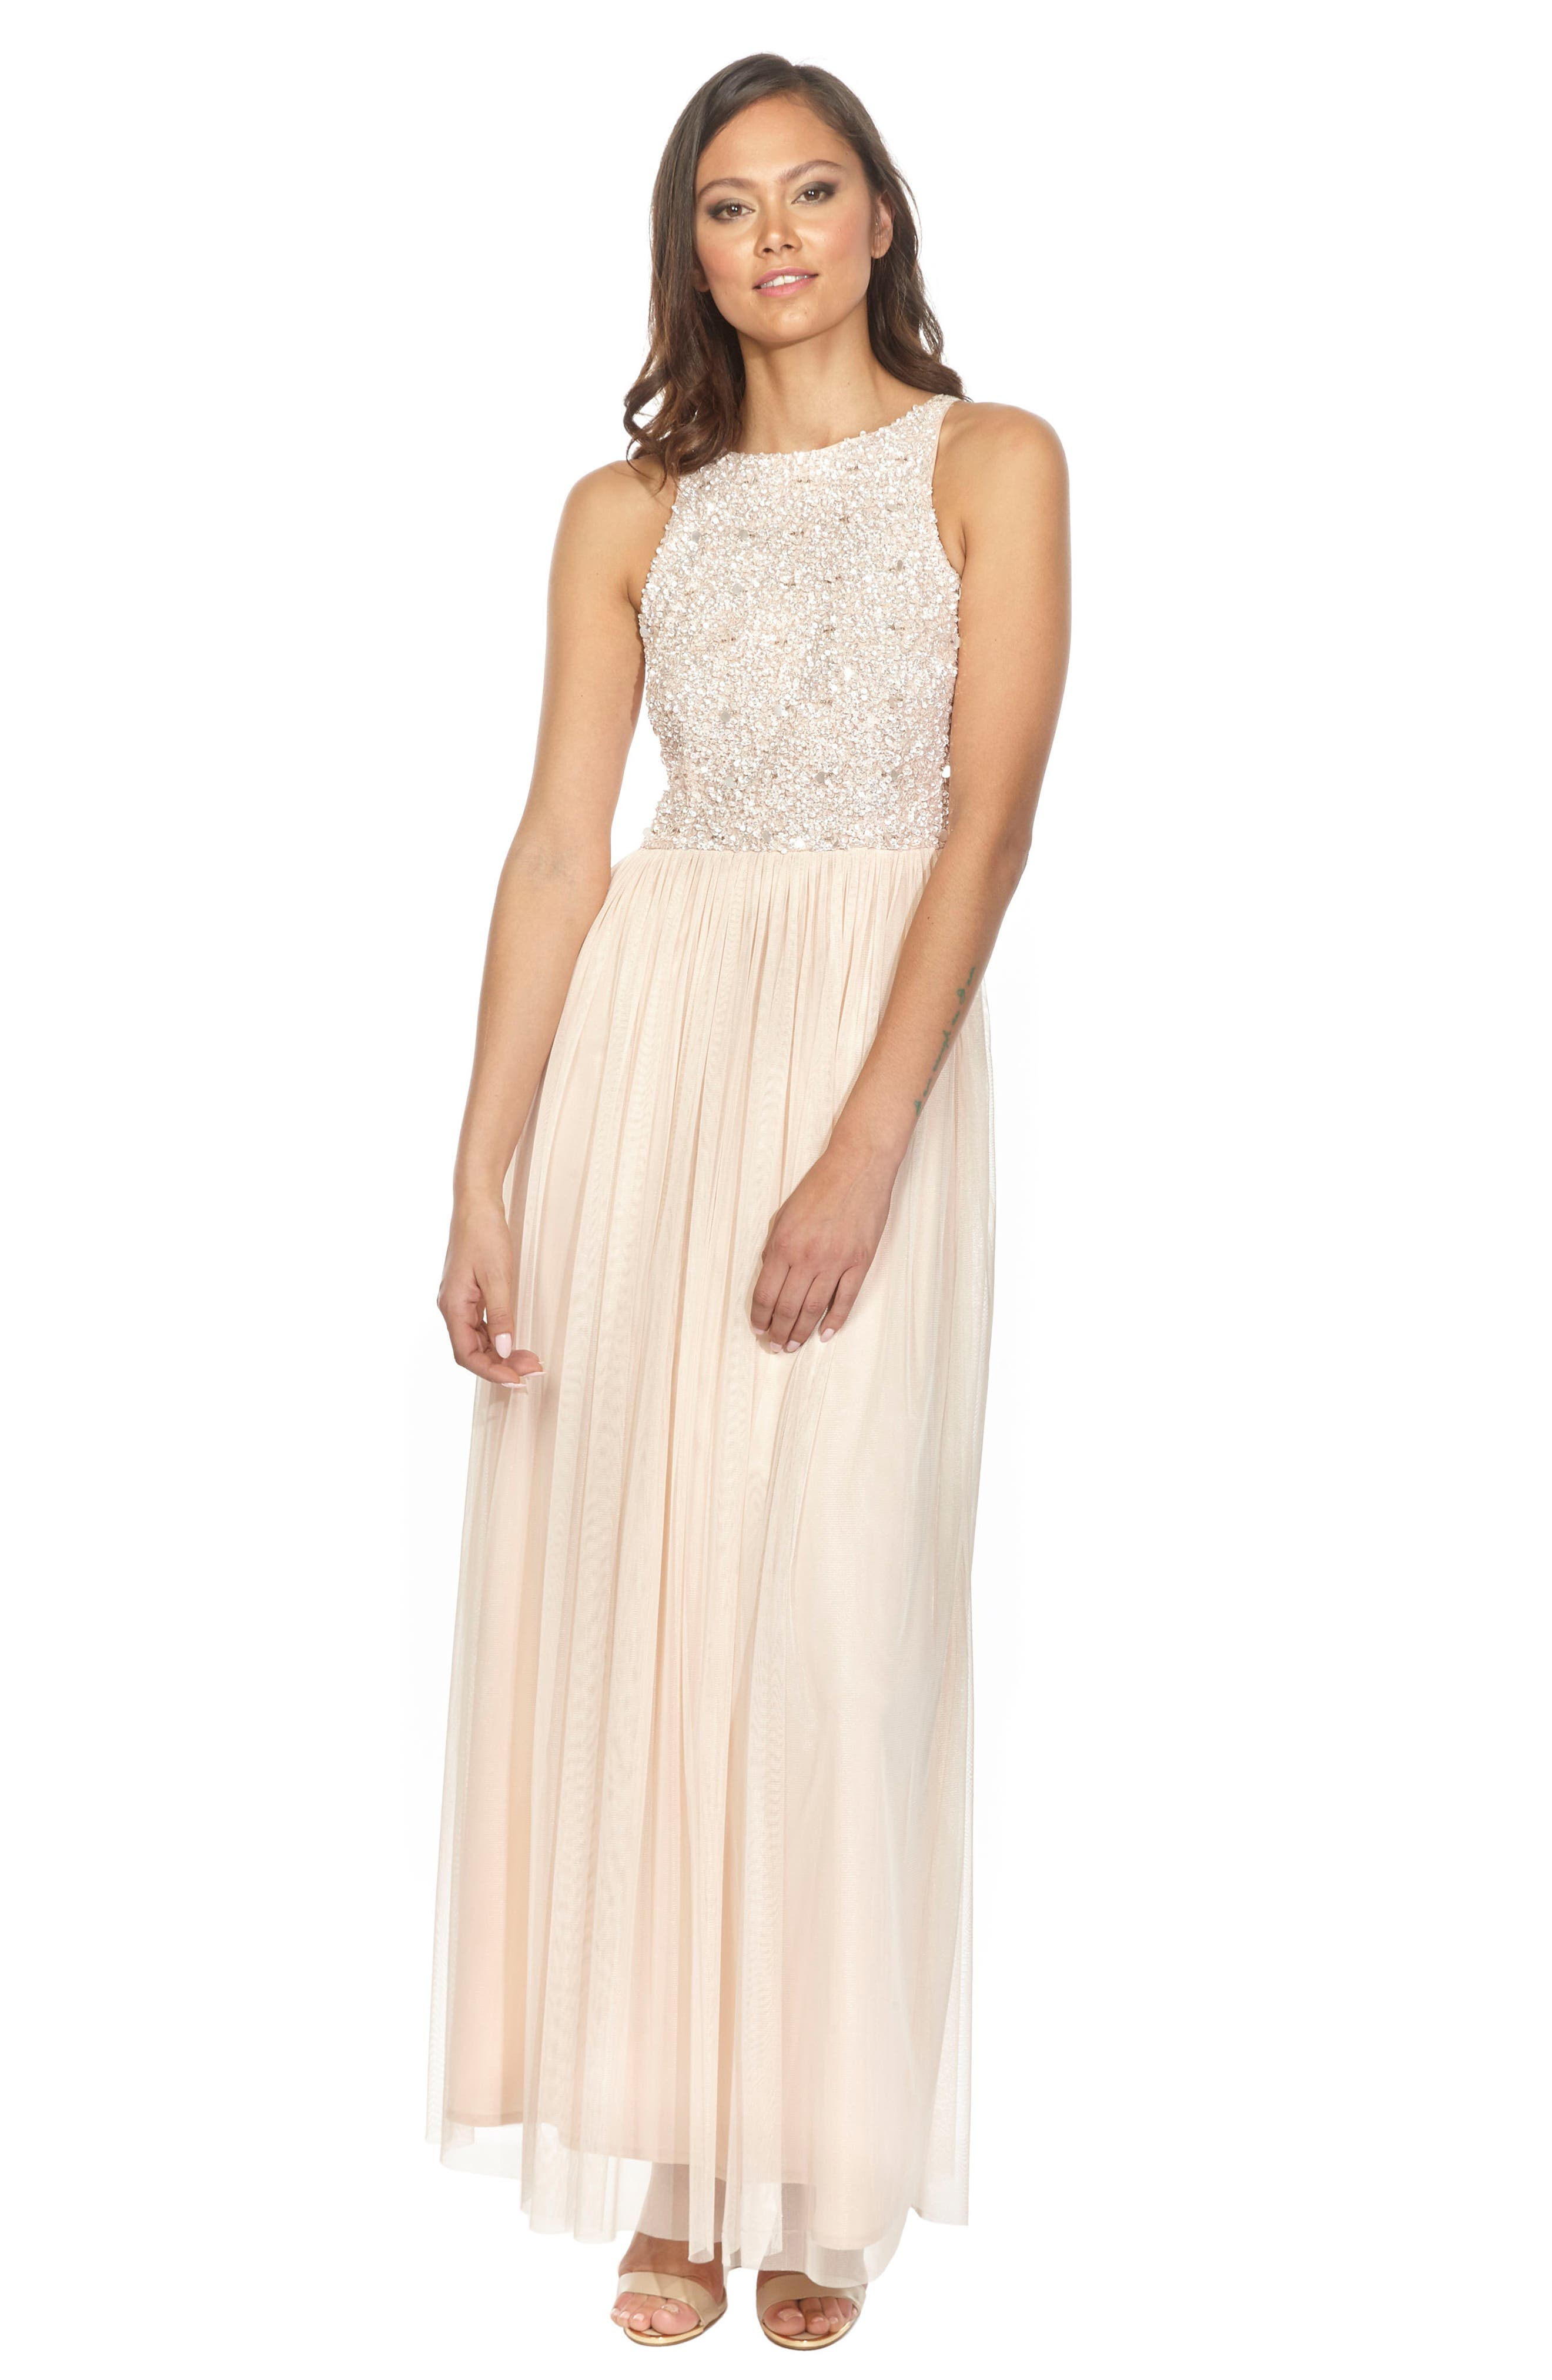 Picasso Embellished Bodice Maxi Dress,                             Alternate thumbnail 5, color,                             NUDE